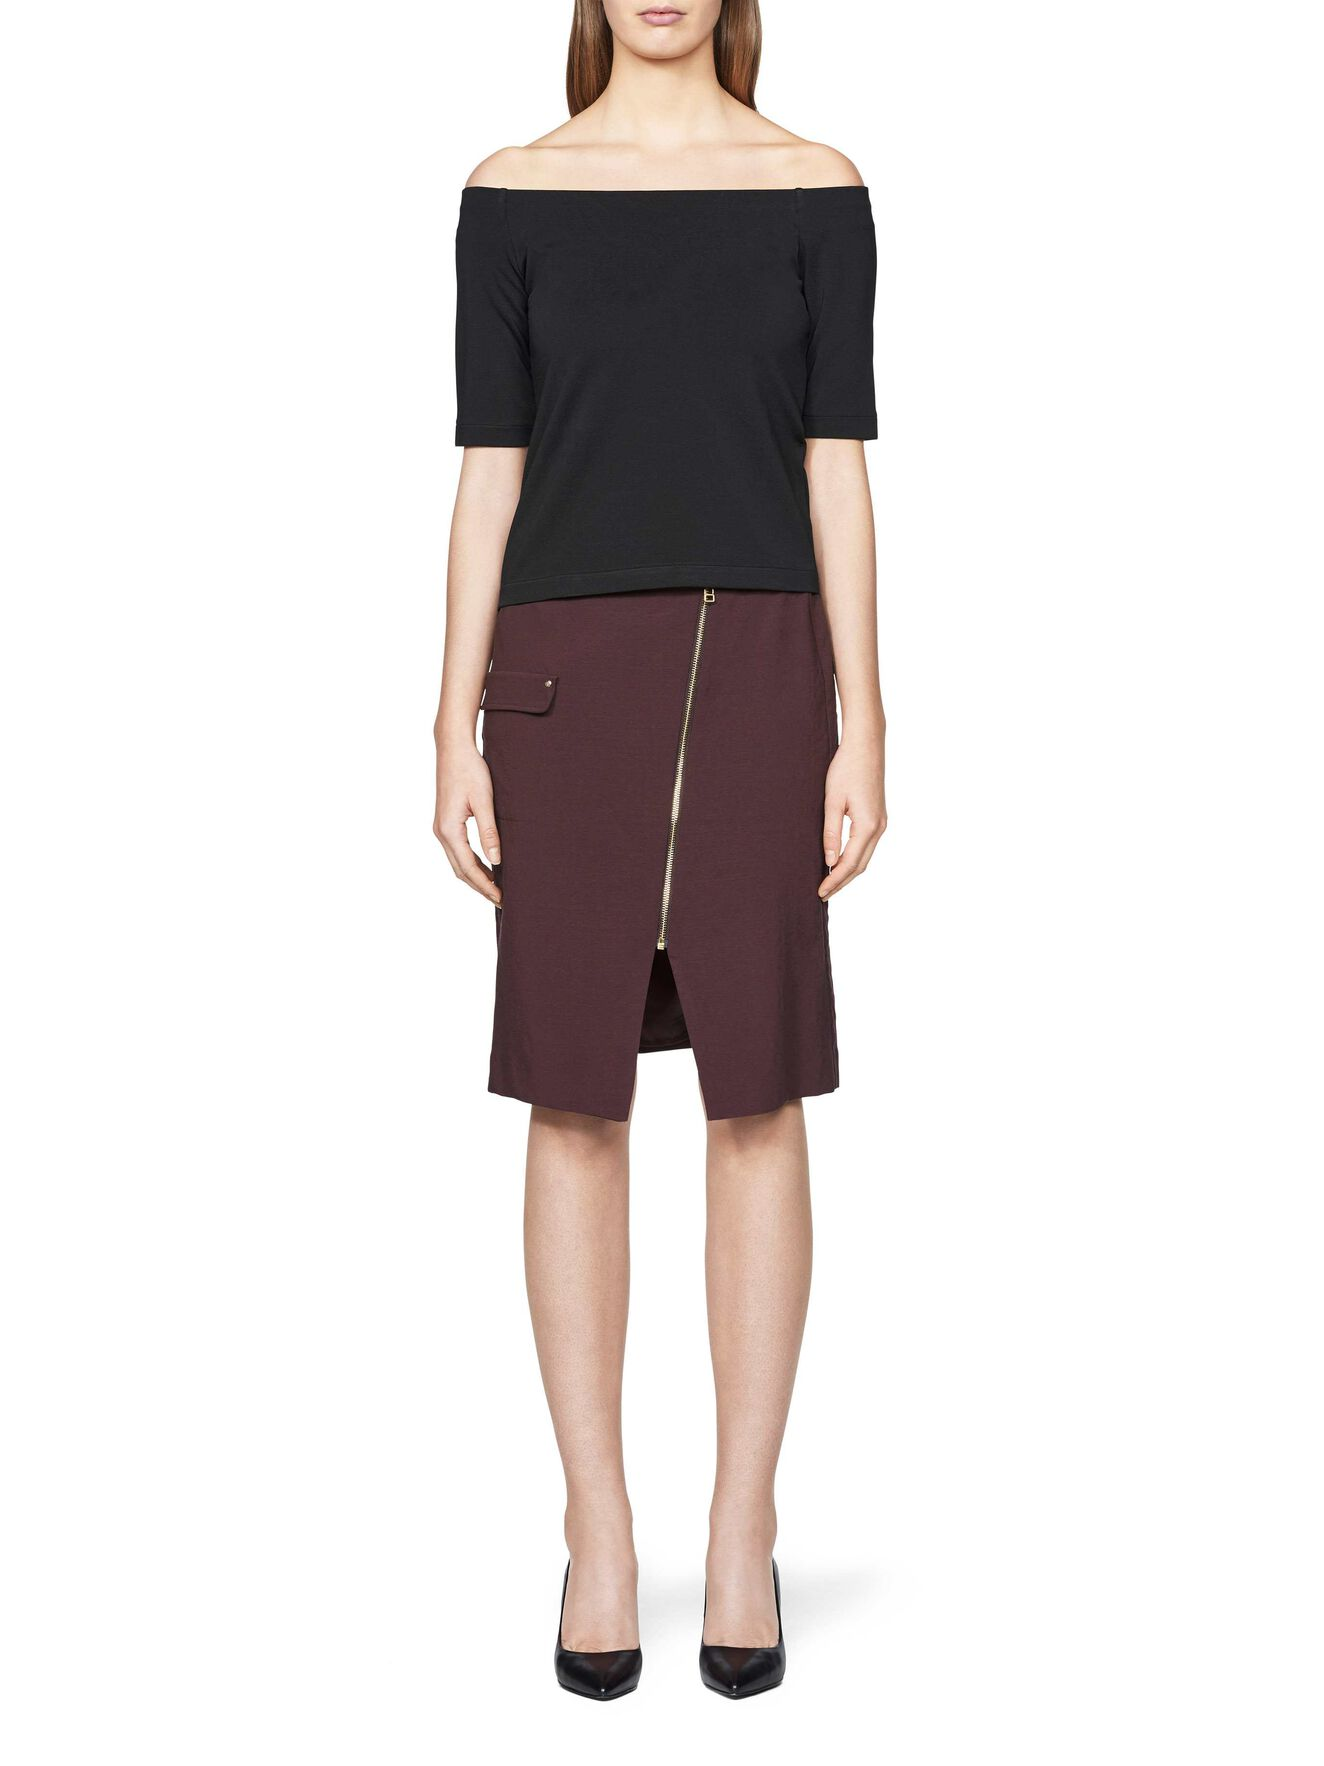 Randi skirt in Deep Aubergine from Tiger of Sweden